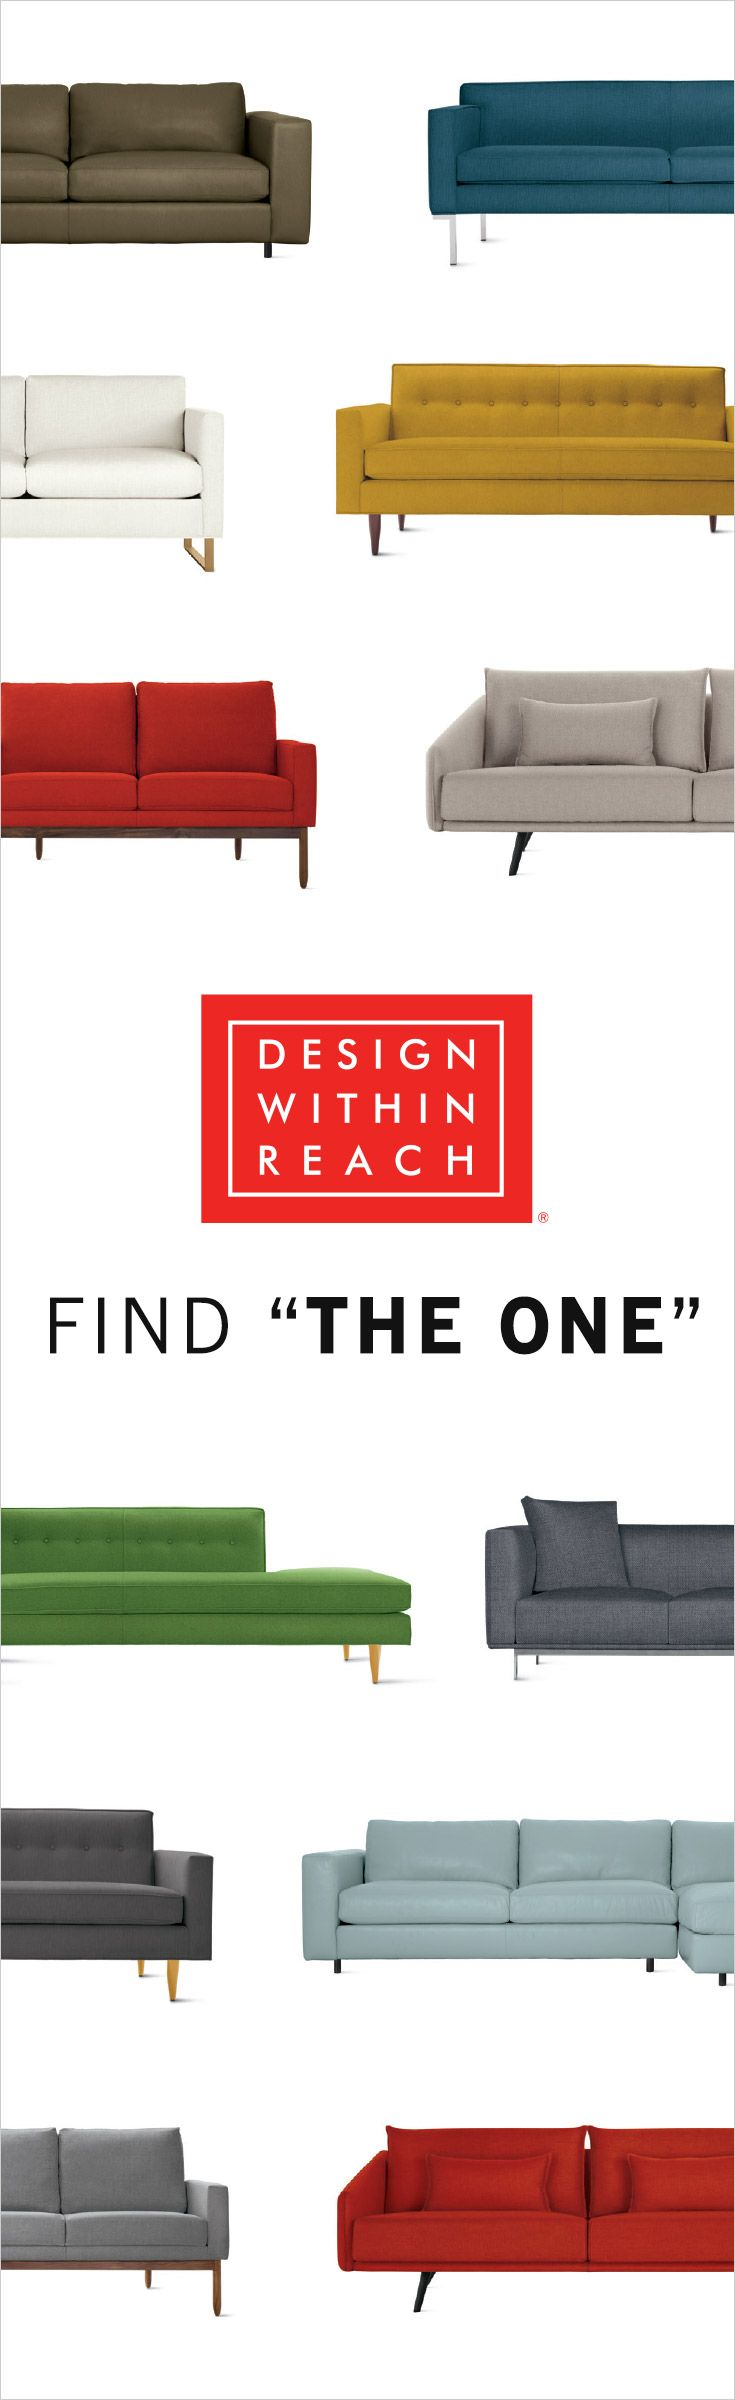 The Sofa Sale at Design Within Reach. Save 15% on select sofas, sectionals and sleepers, as well as lounge chairs, occasional tables and rugs. The Sofa Sale is valid August 2–25, 2016.